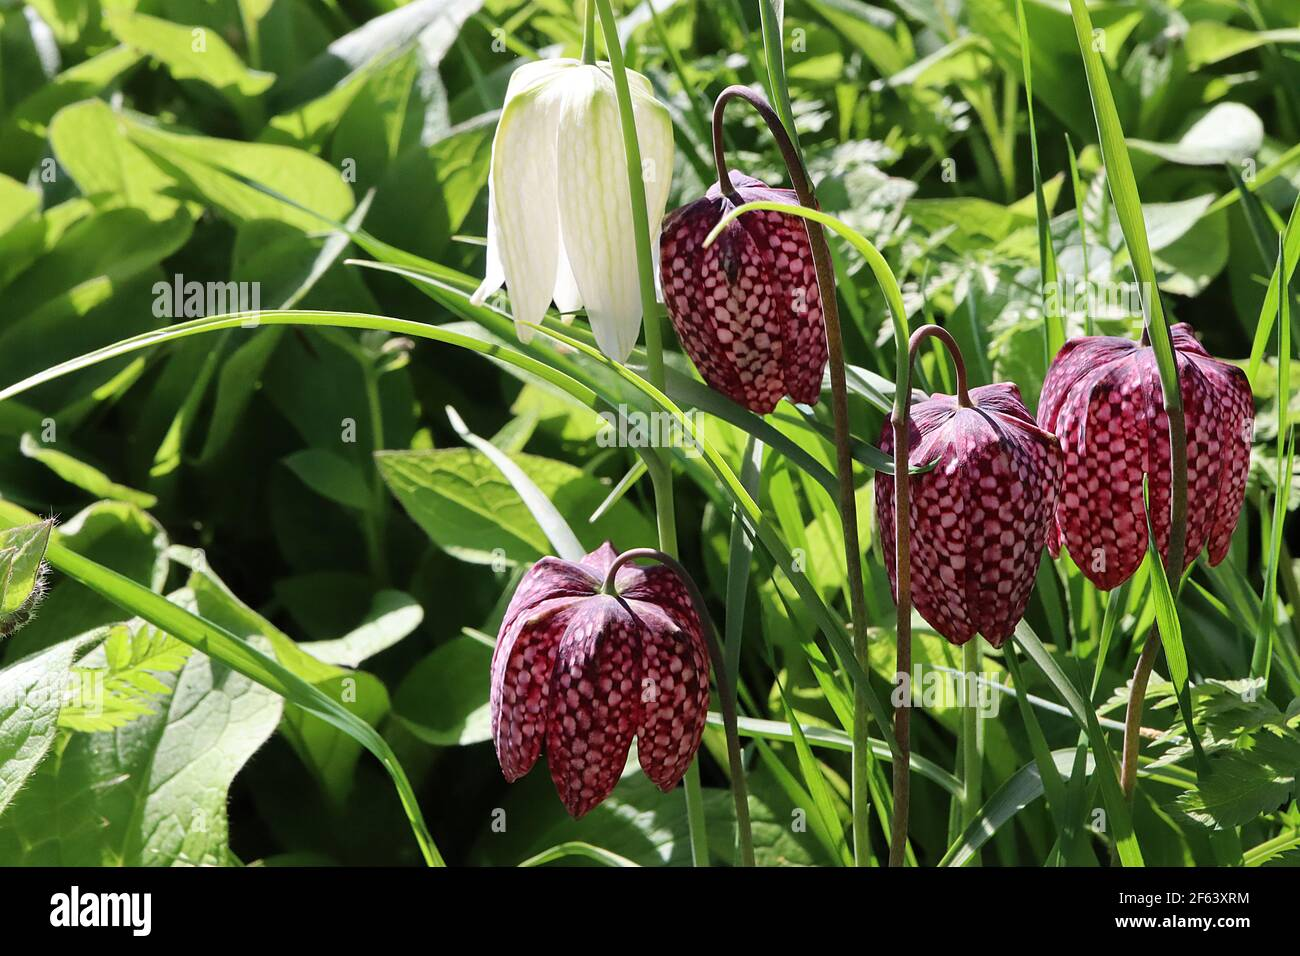 Fritillaria Meleagris Mixed High Resolution Stock Photography and ...